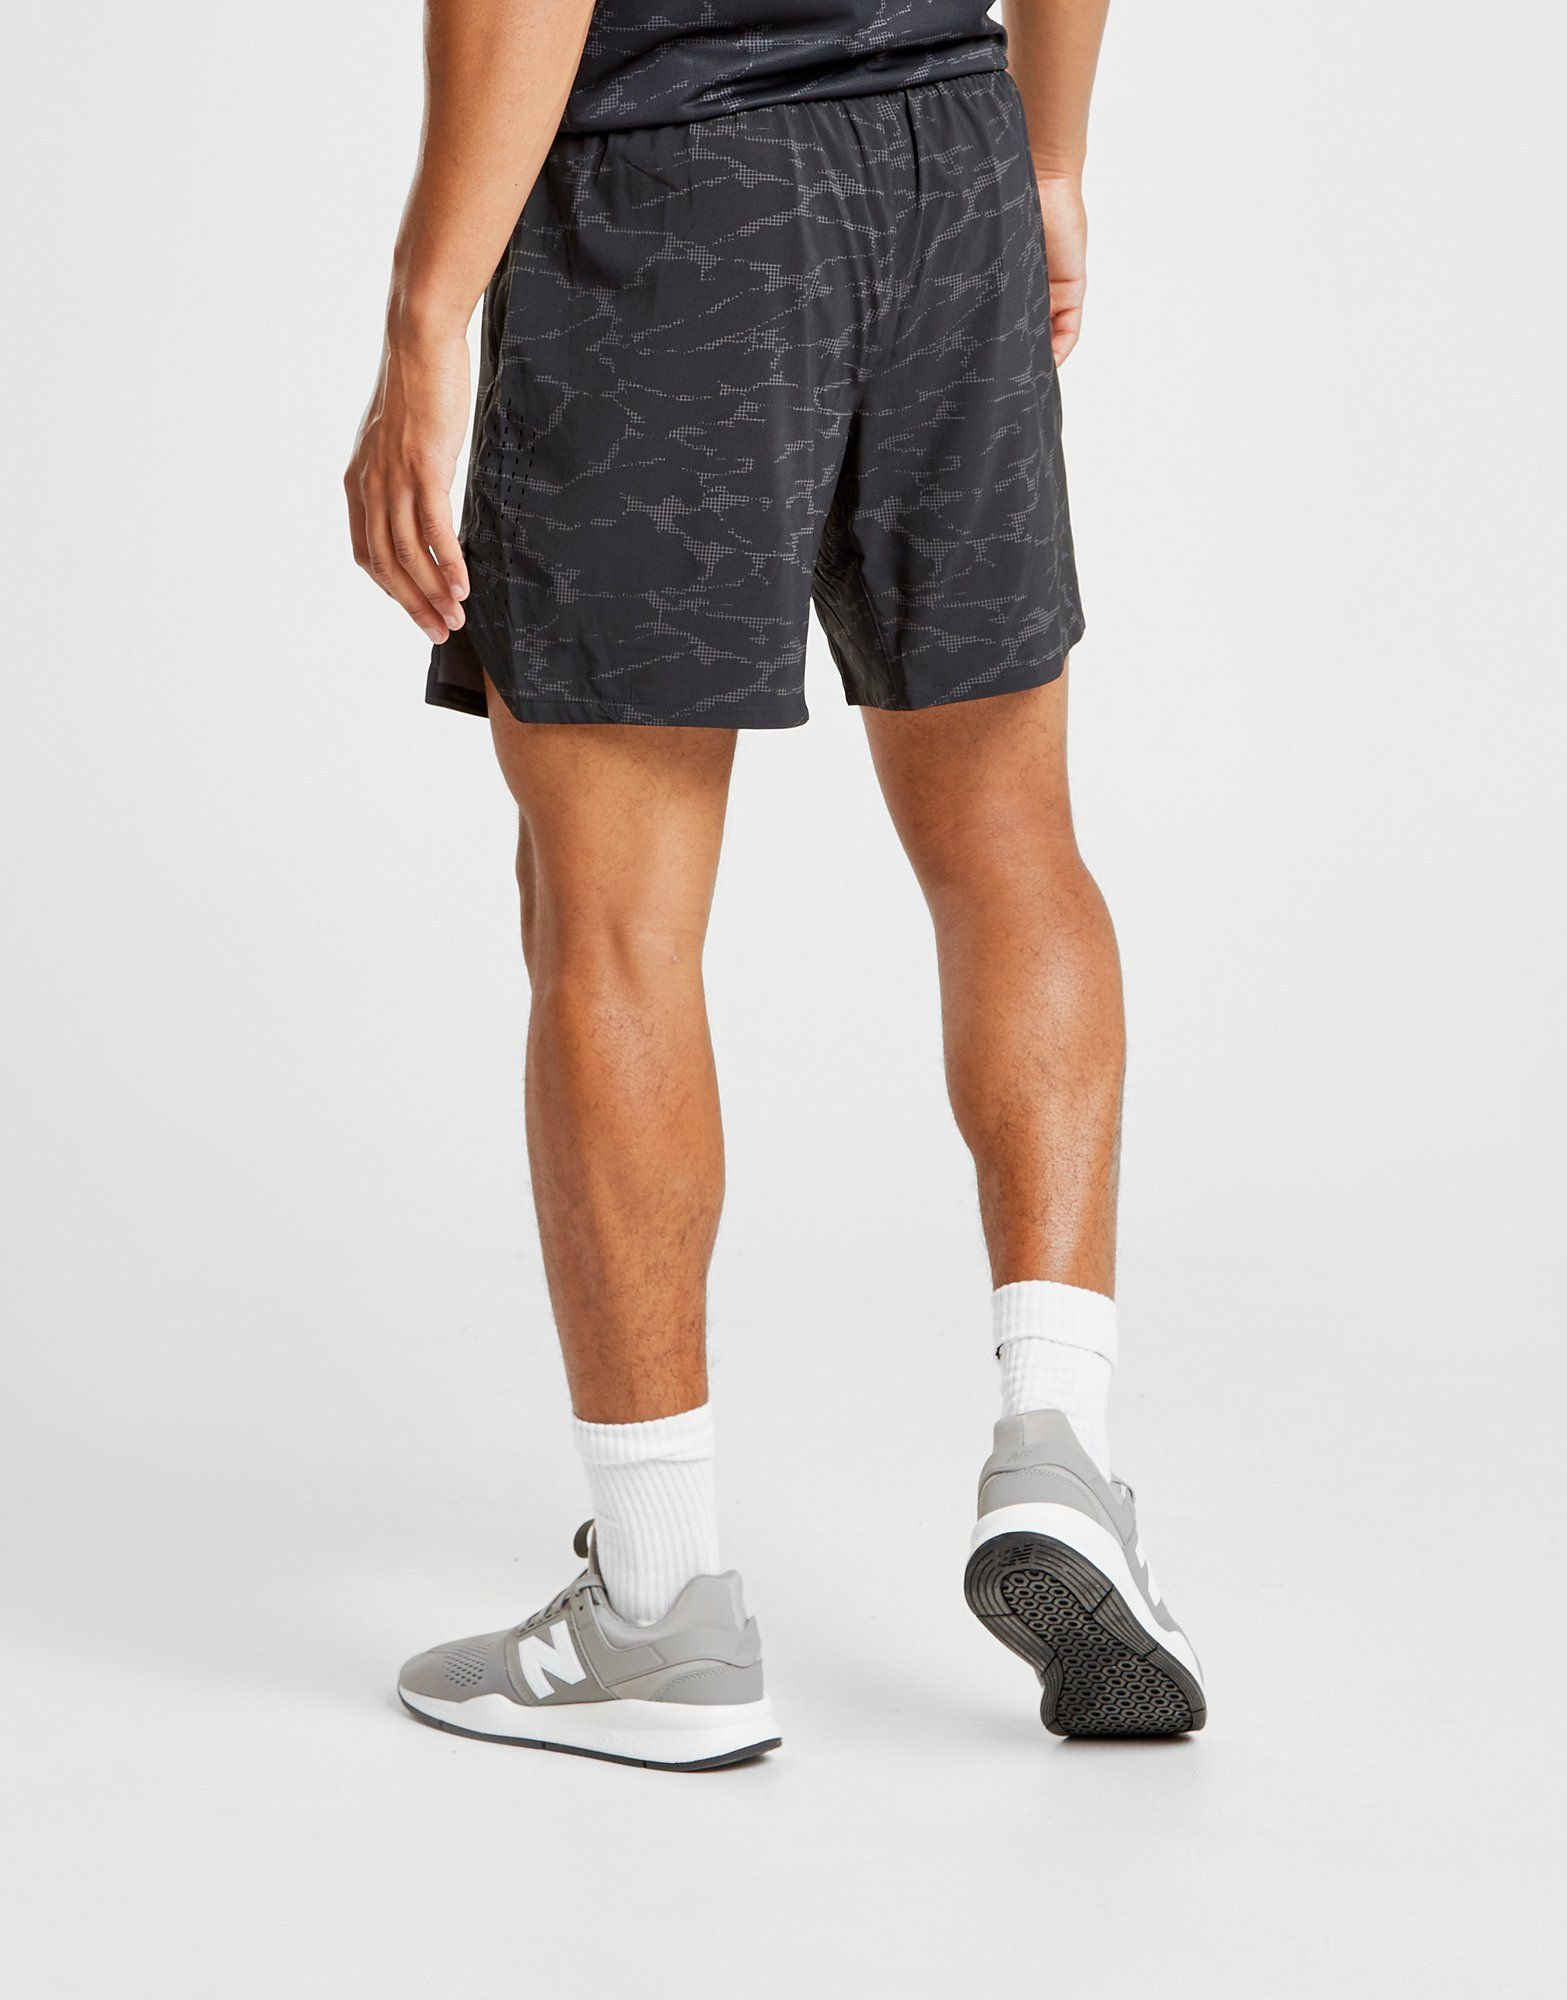 New Balance Transform 2-in-1 Shorts